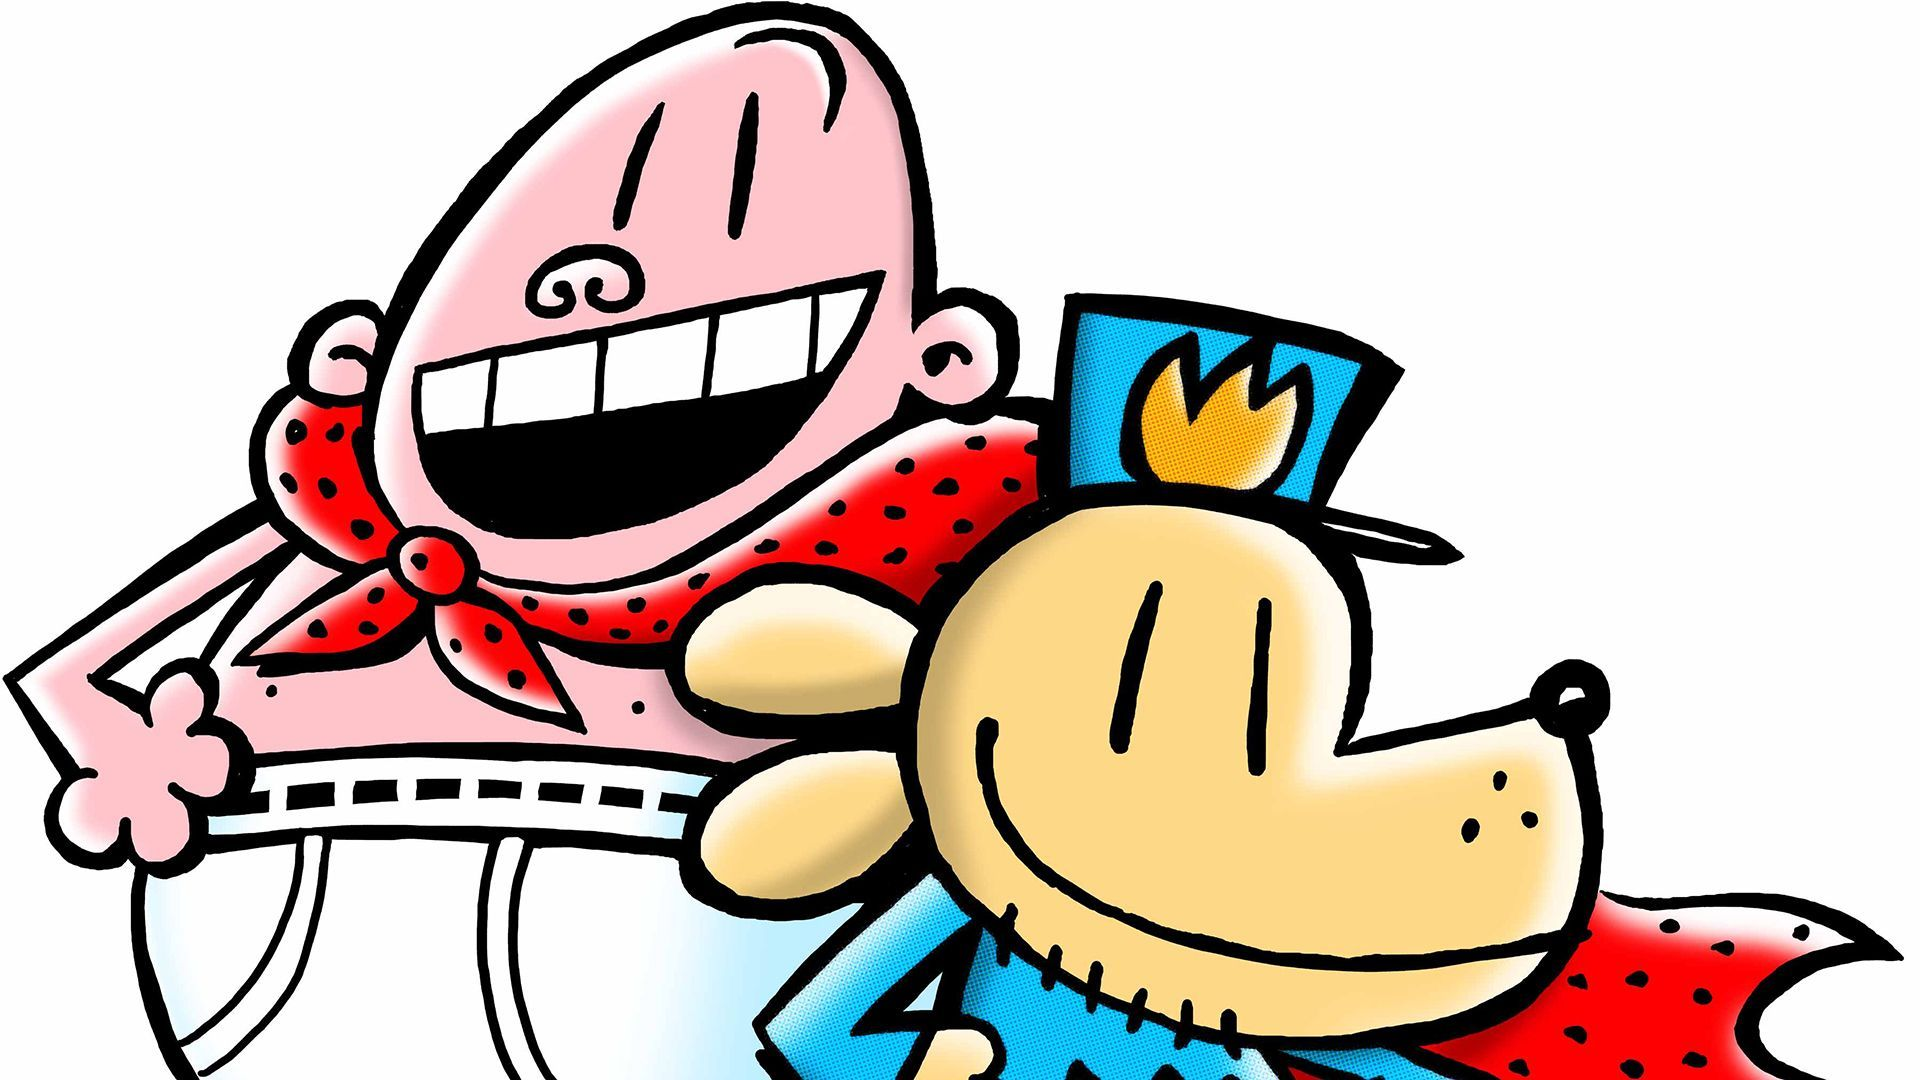 5 things you may not know about 'Captain Underpants' author Dav Pilkey #captainunderpantscostume 5 things you may not know about 'Captain Underpants' author Dav Pilkey #captainunderpantscostume